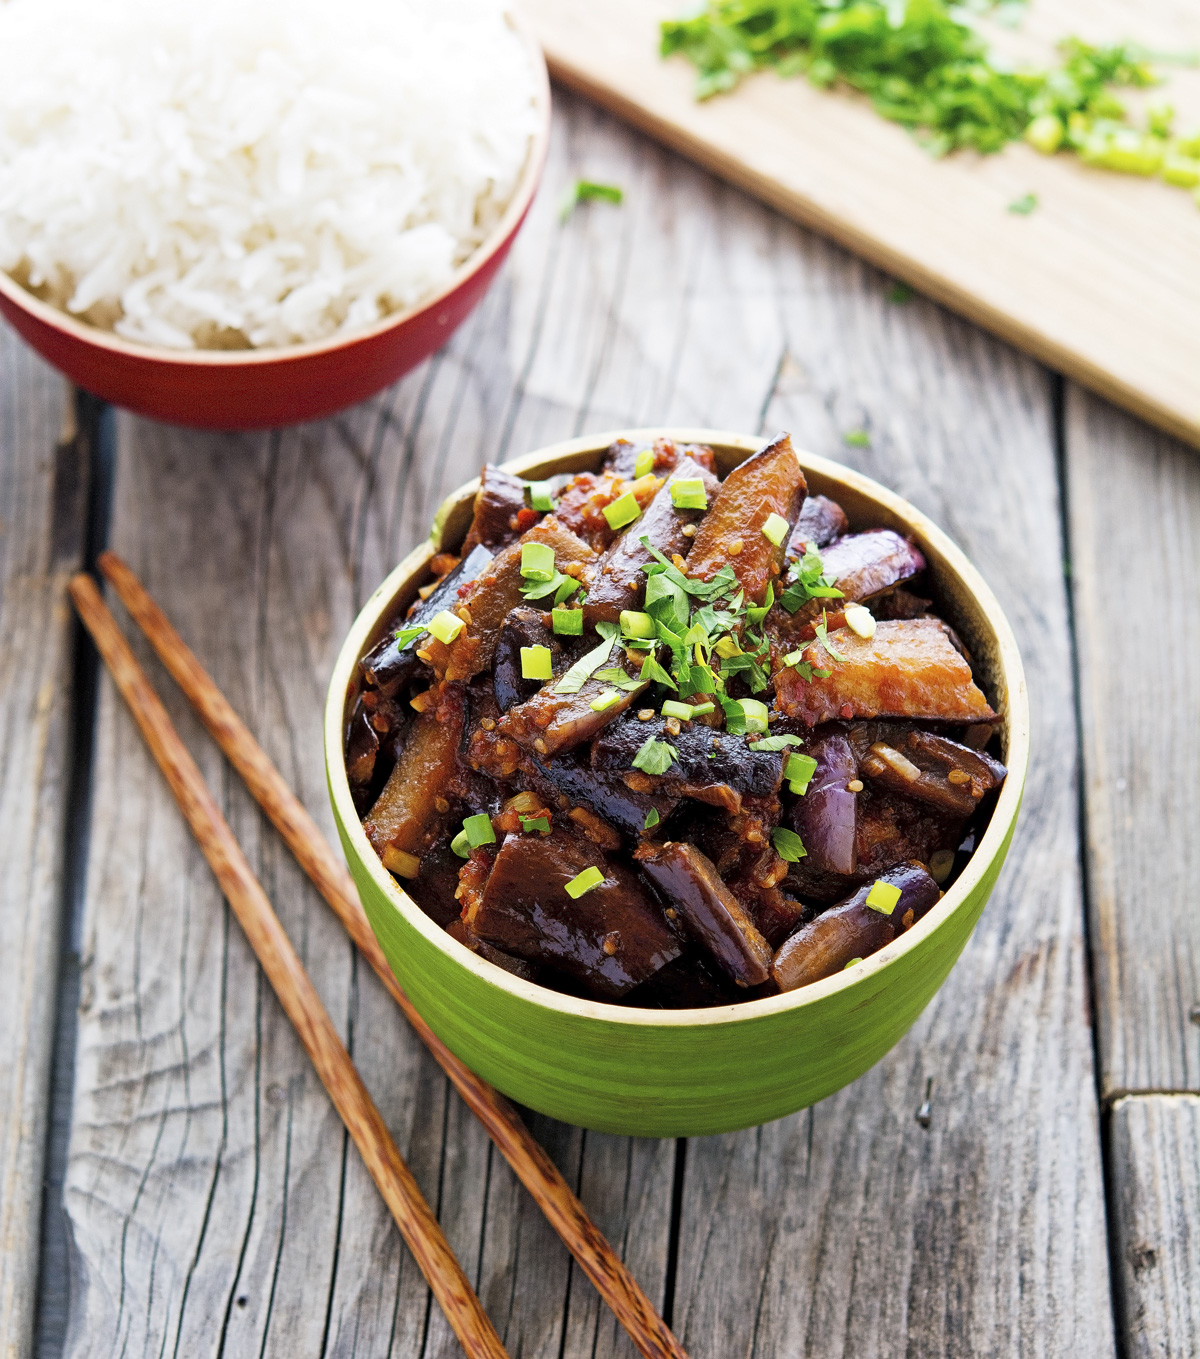 Spicy Vegan Chinese Eggplant